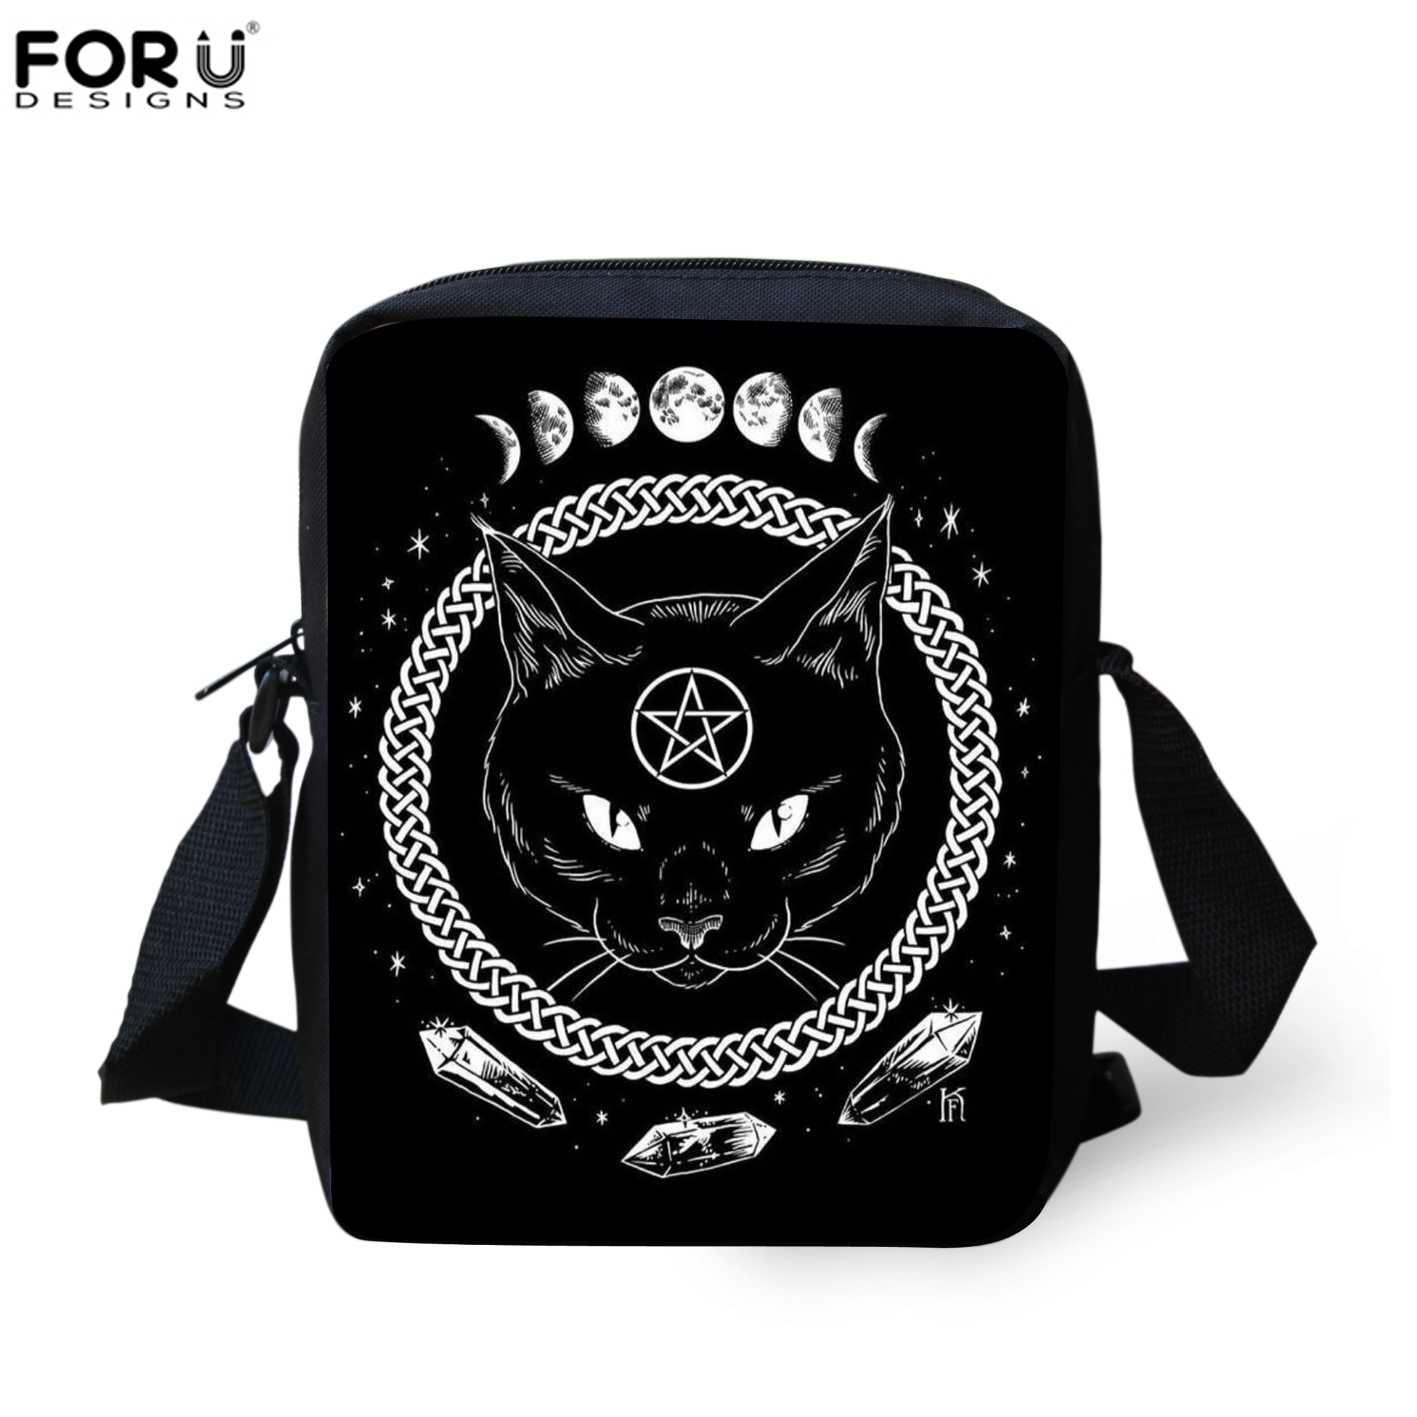 641154ab5b Detail Feedback Questions about FORUDESIGNS Gothic Moon Phase Witchcraft  Cat Crossbody Bag Women Men Travel Messenger Bags Pouch Coin Phone Purse ...